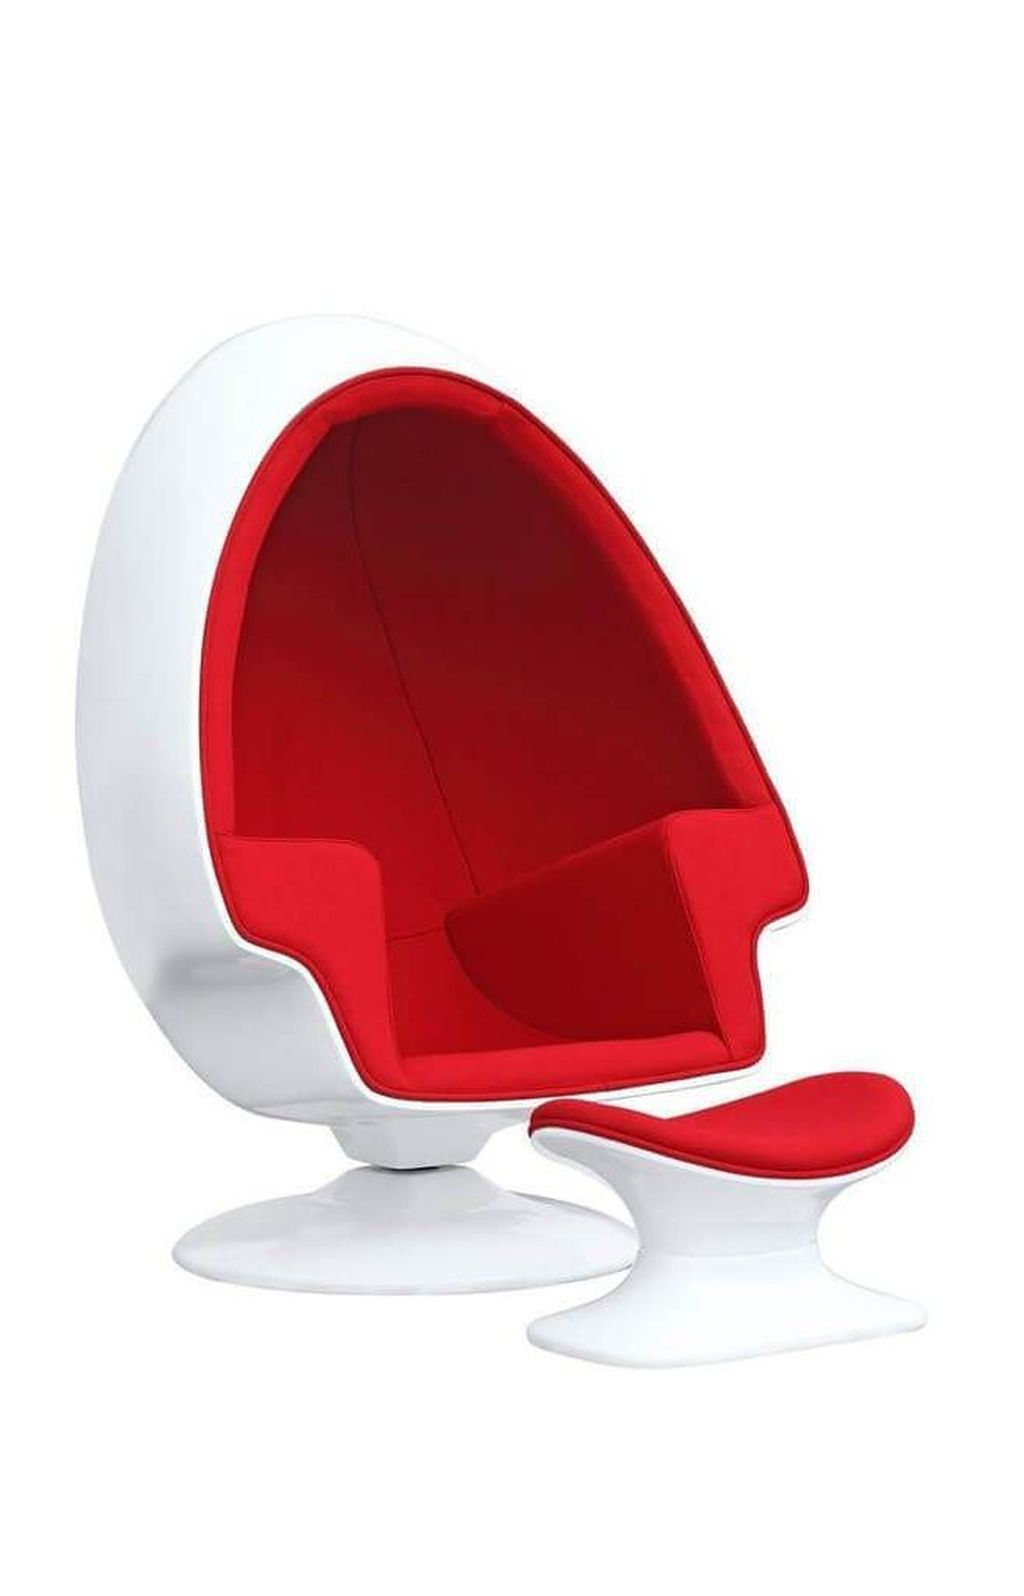 Favorite Chairs Design Ideas For Mental And Physical Relaxation 31